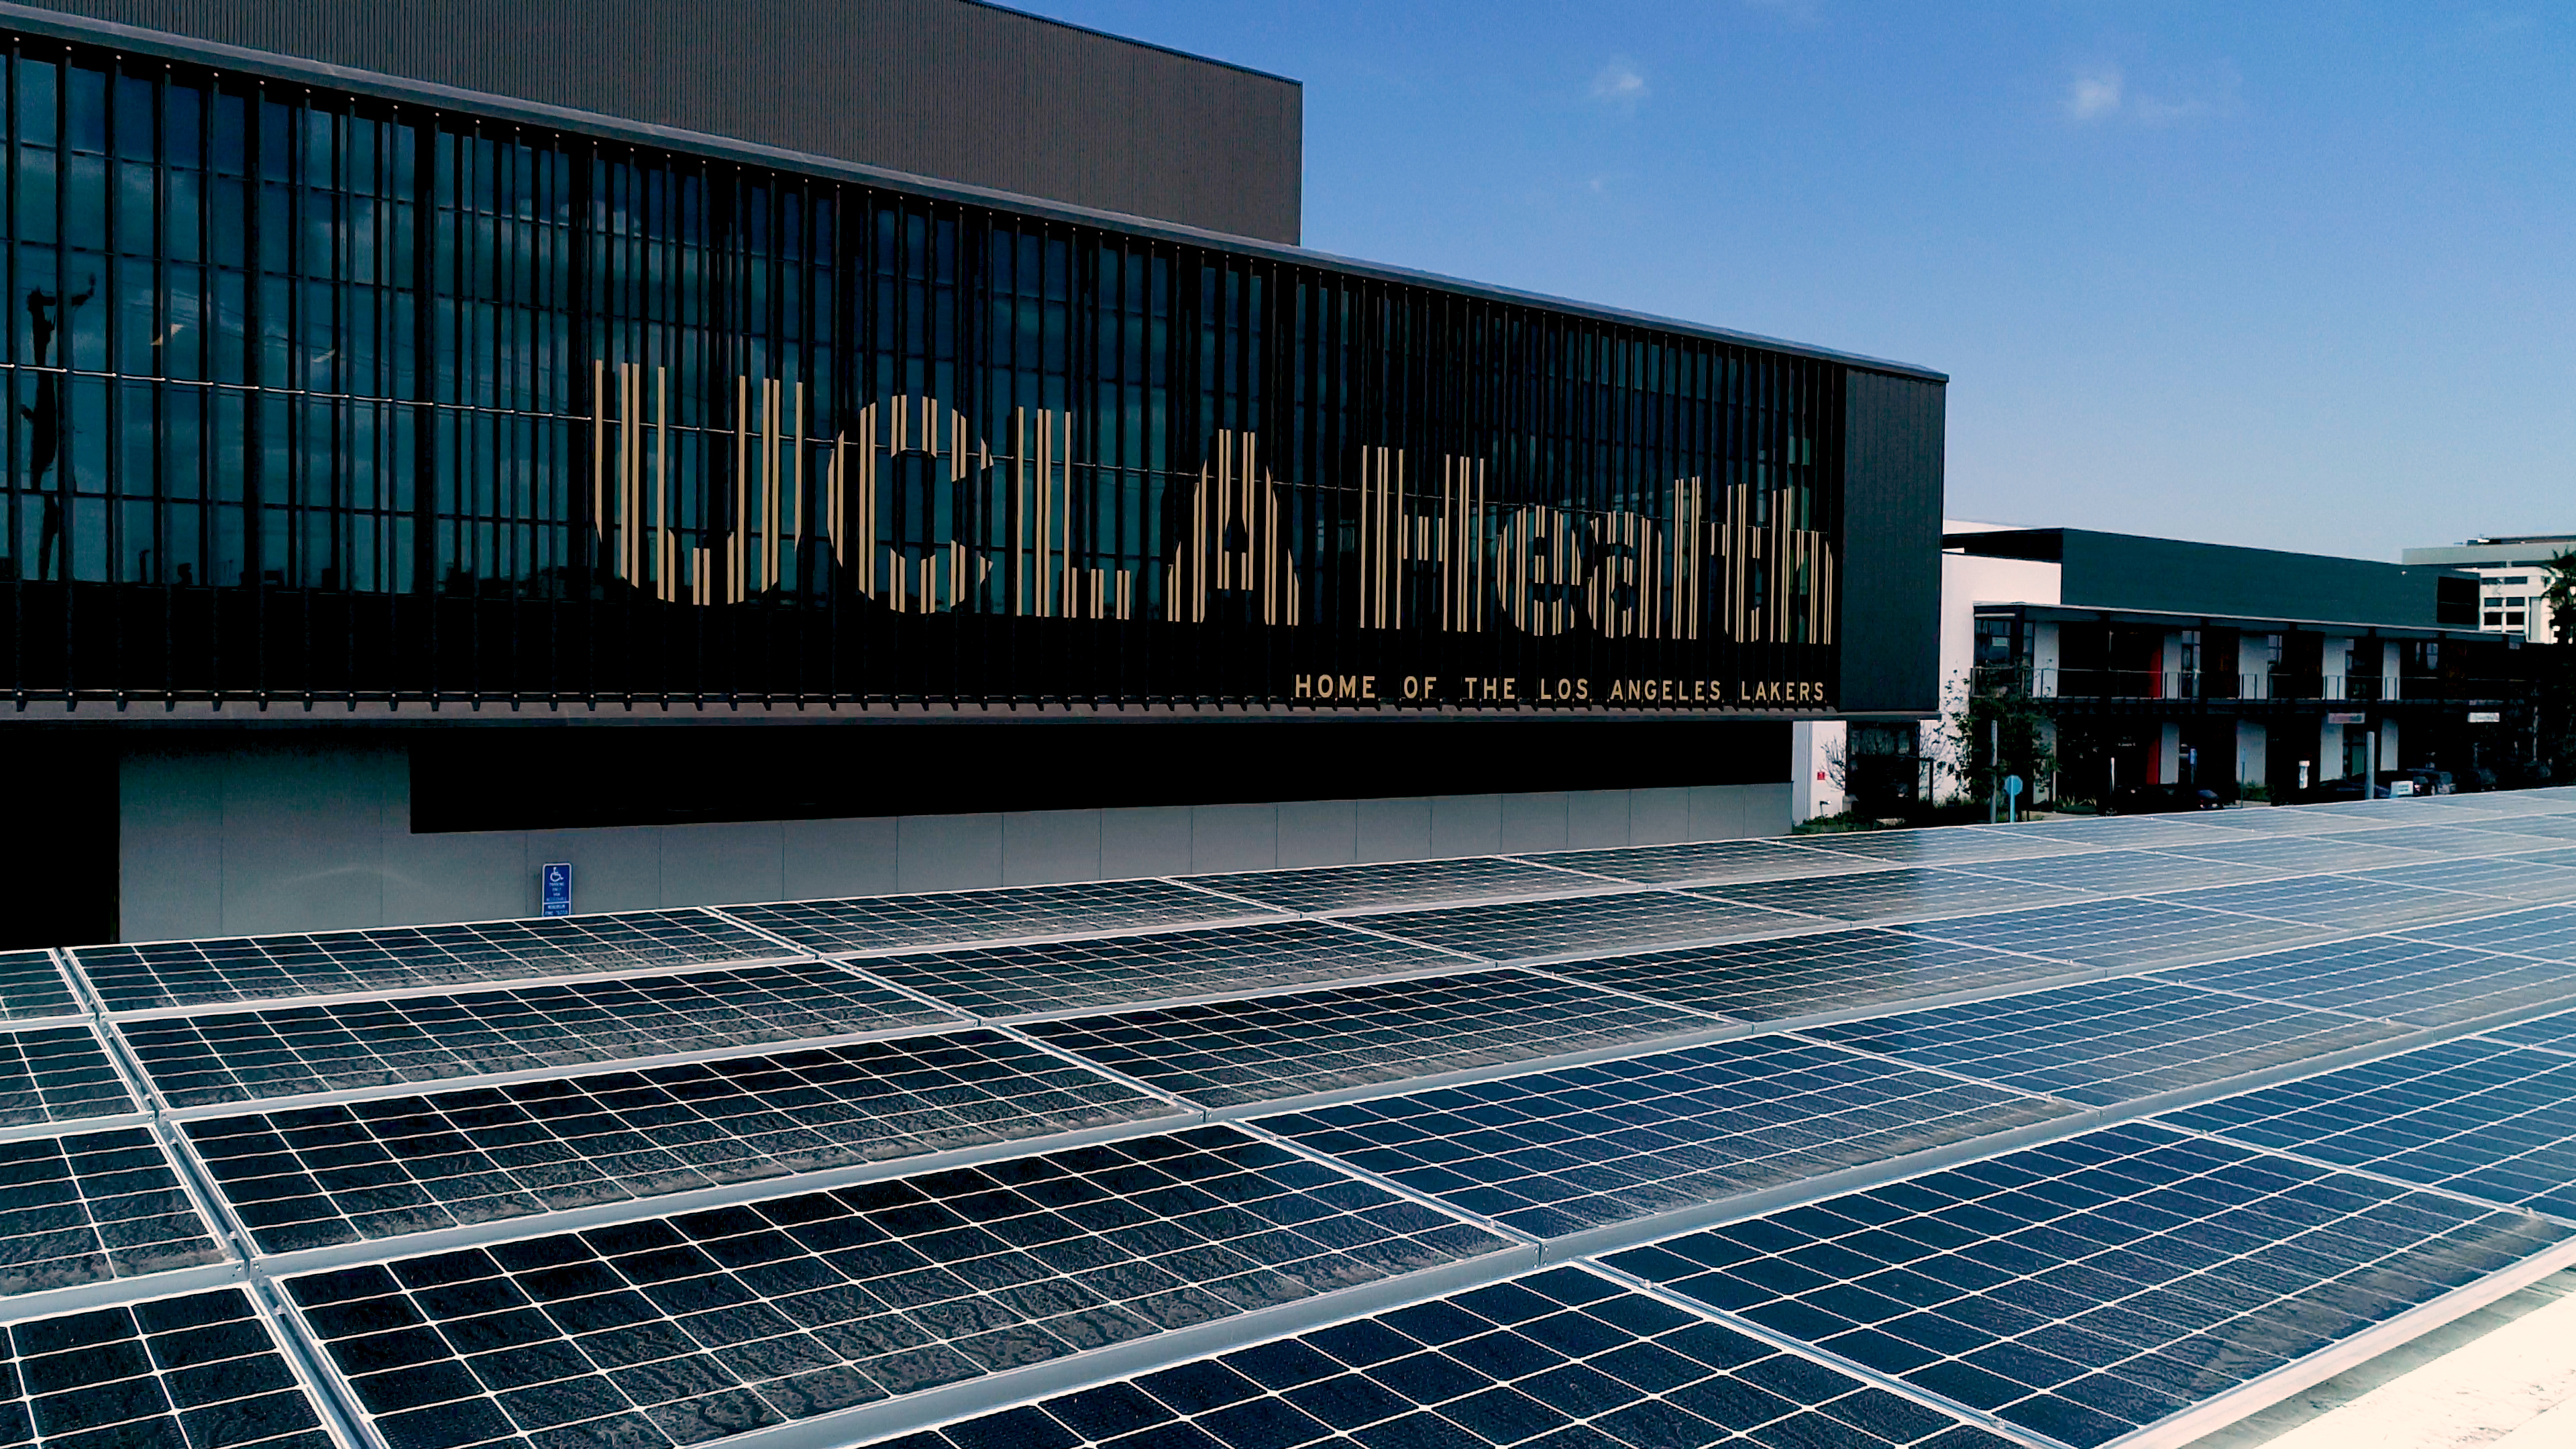 Solar companies can score big with sports venue installations